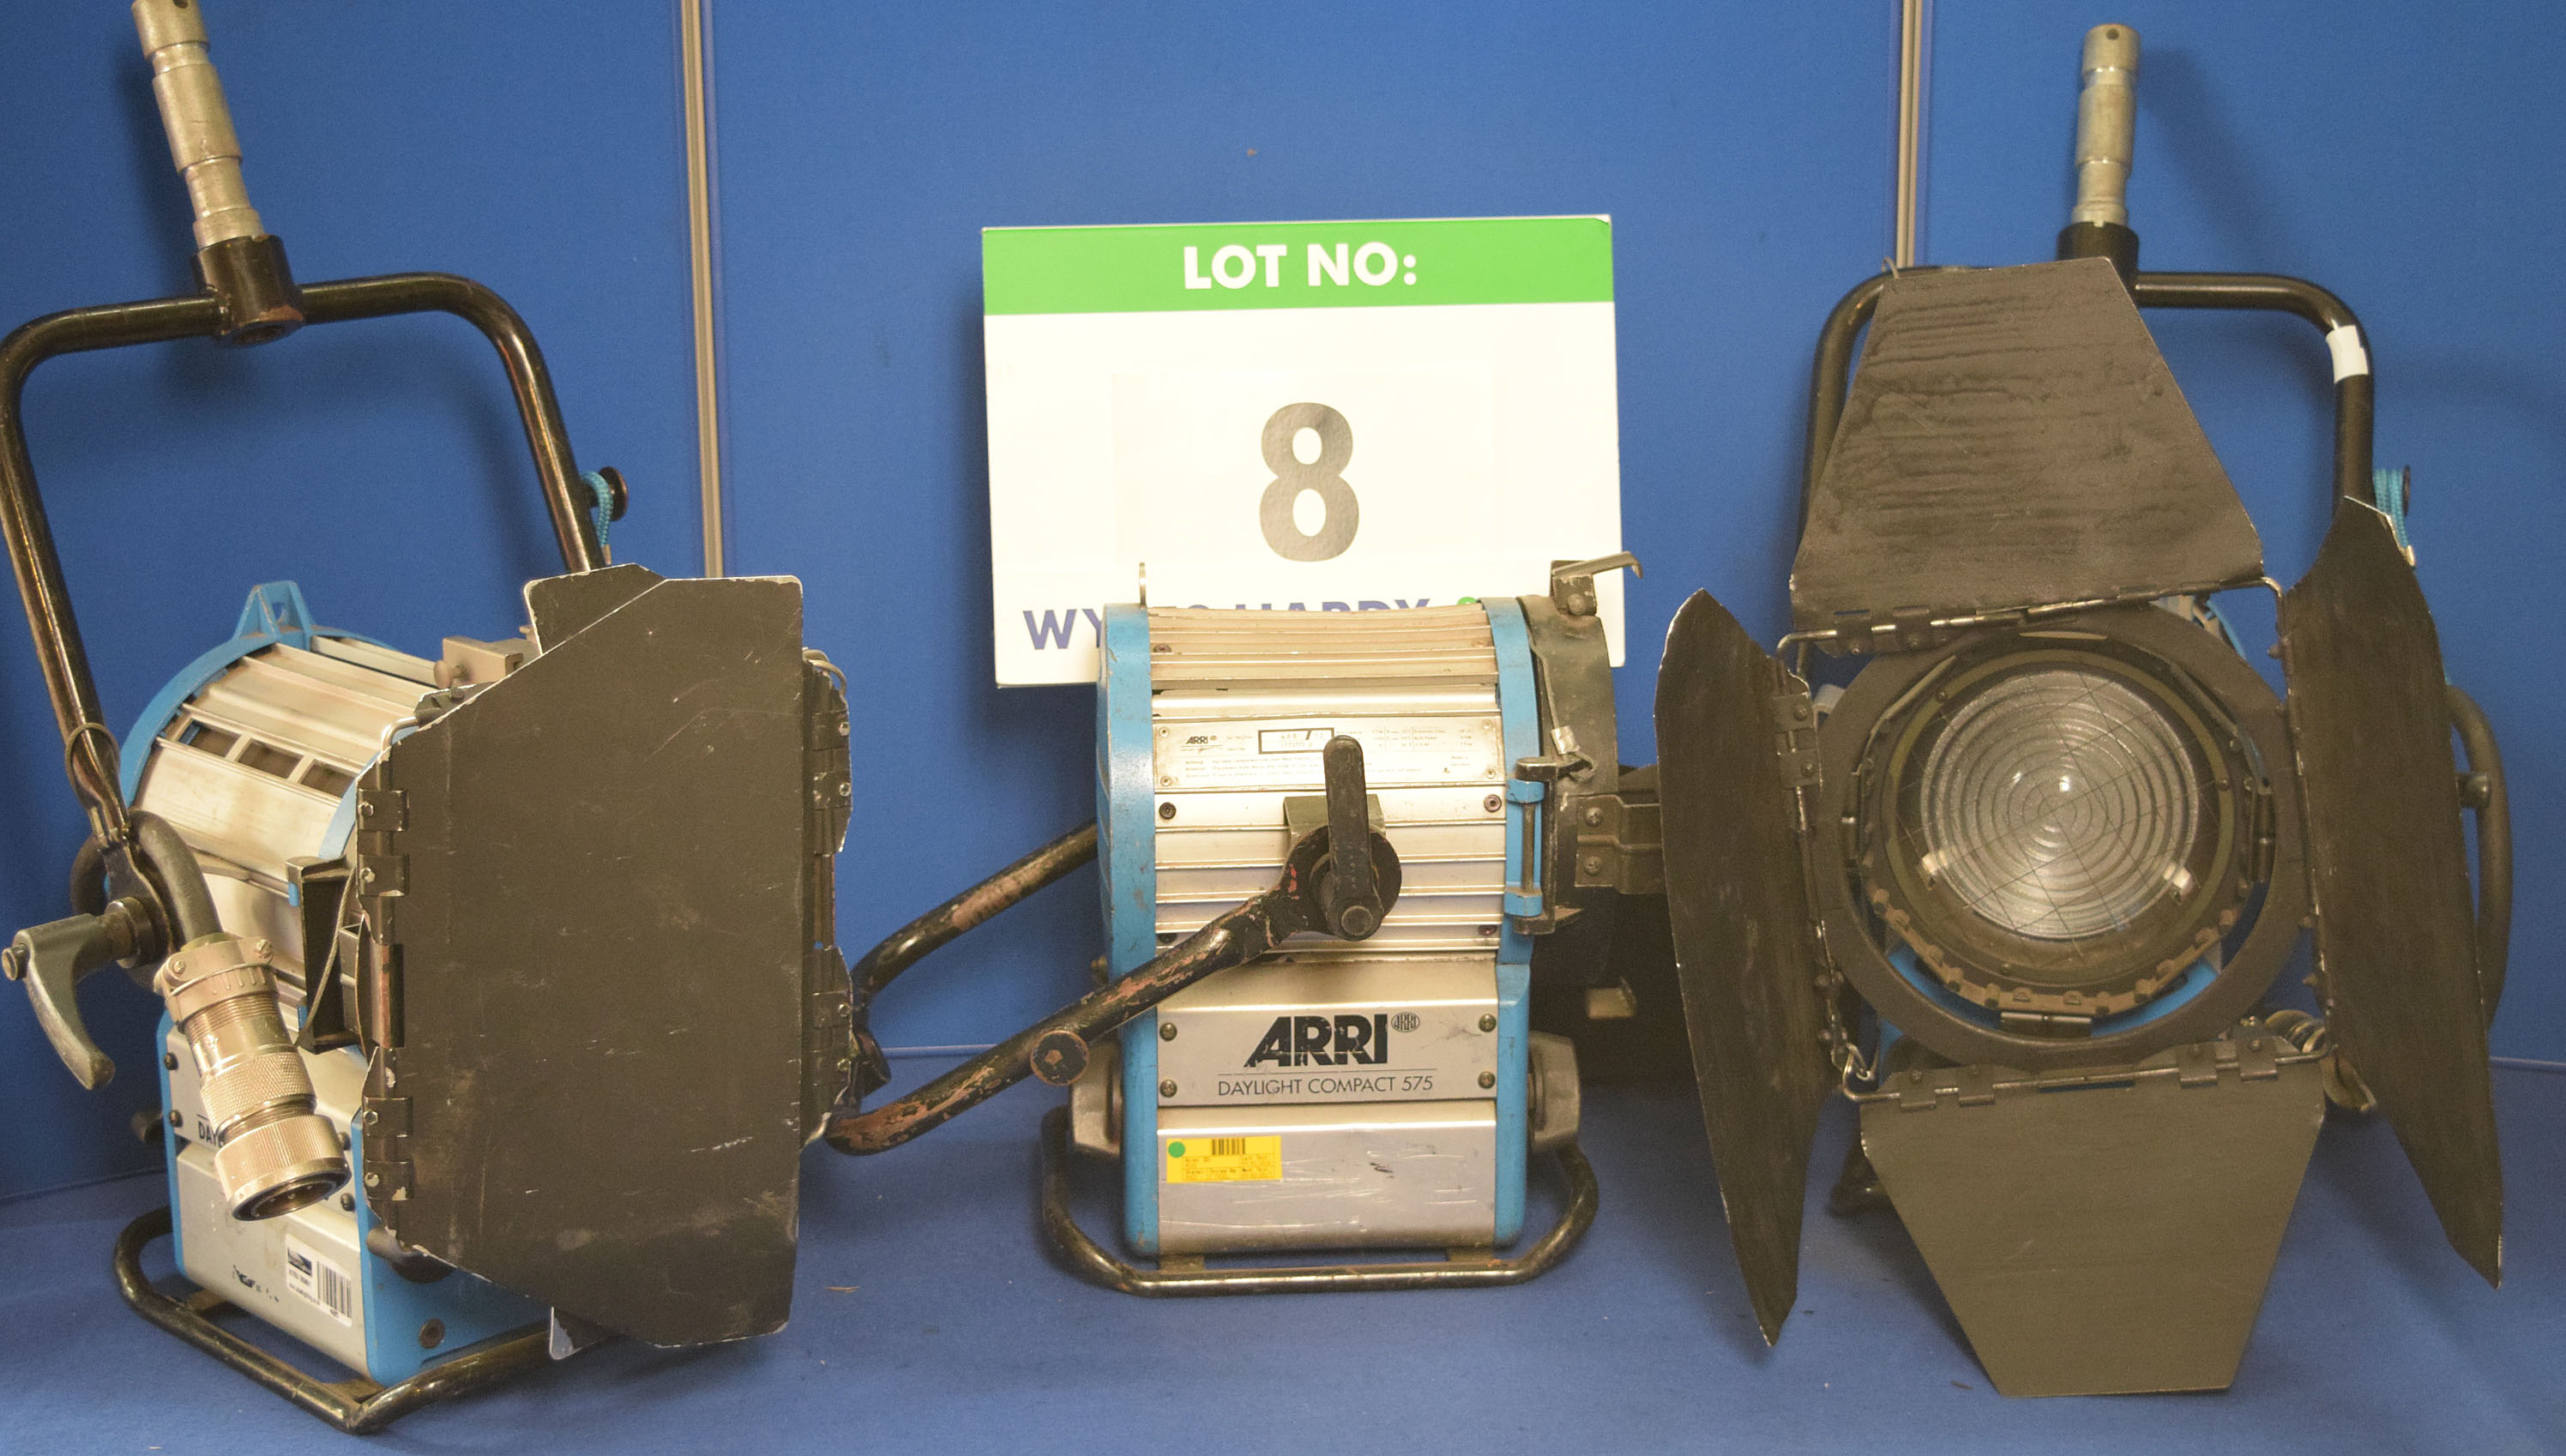 Lot 8 - Three ARRI Daylight Compact 575 Lights each with fitted Barn Doors and Stirrup Mount